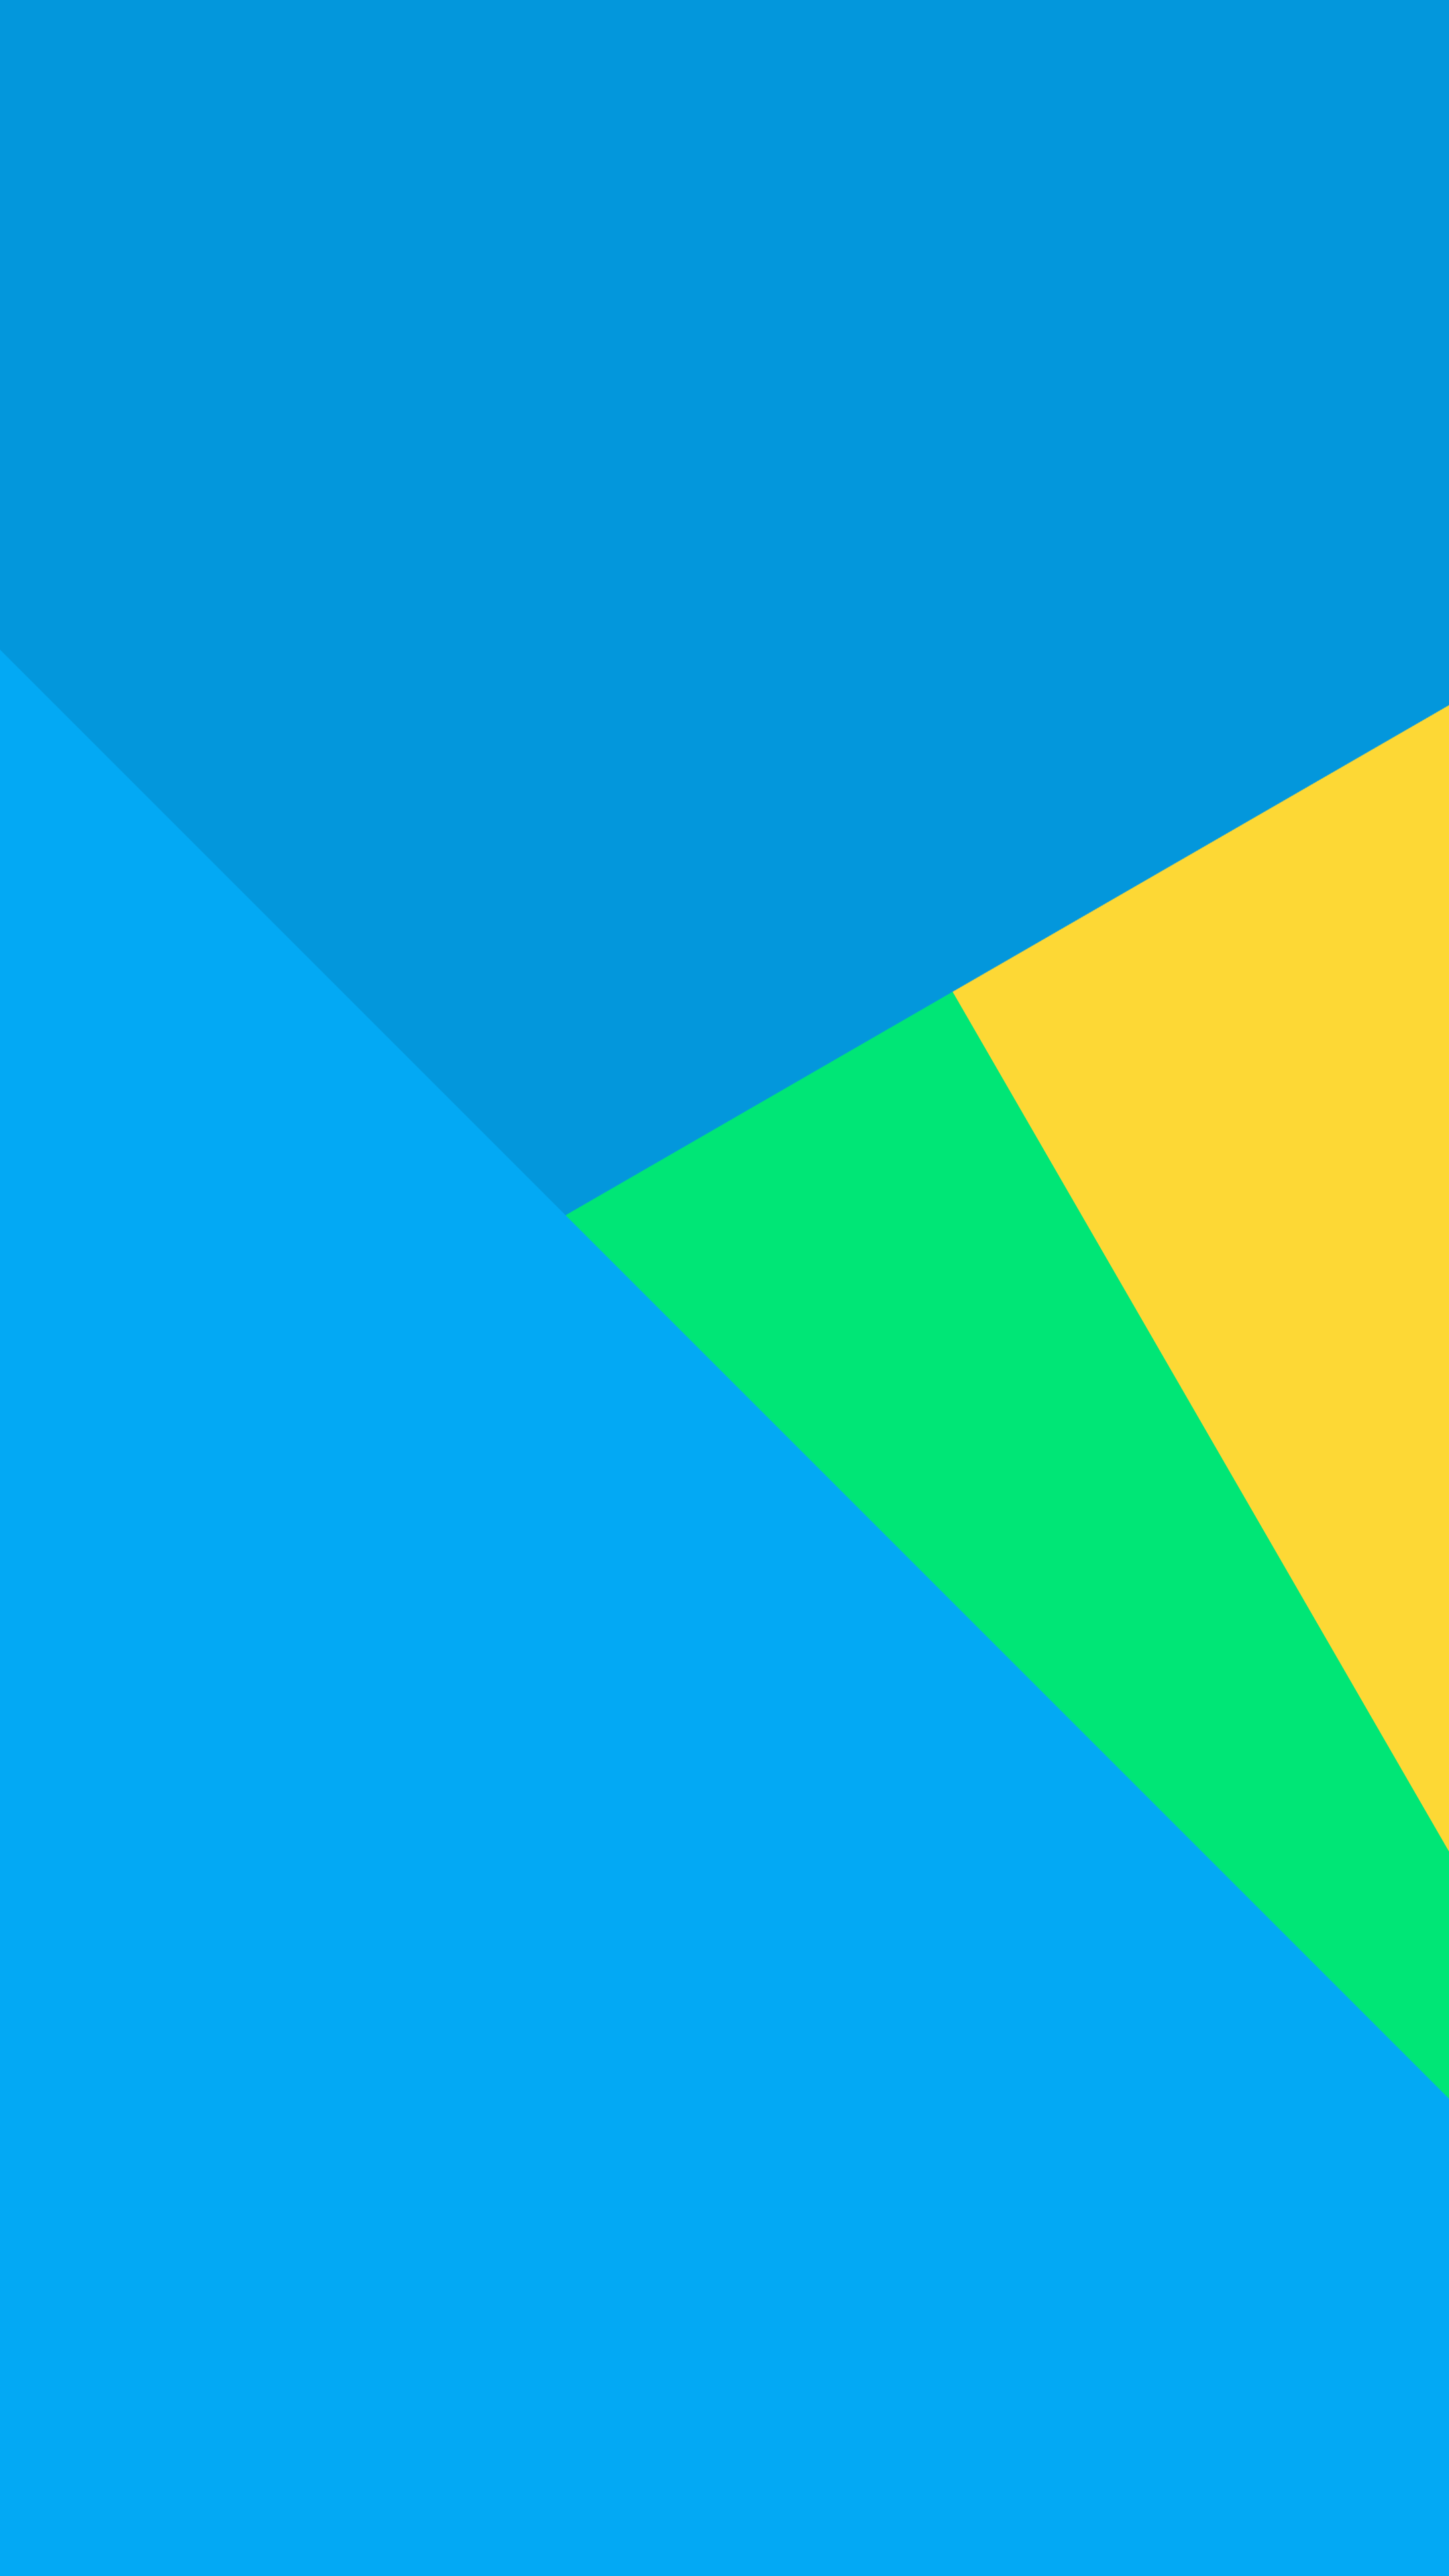 COLLECTION: MATERIAL DESIGN INSPIRED WALLPAPERS